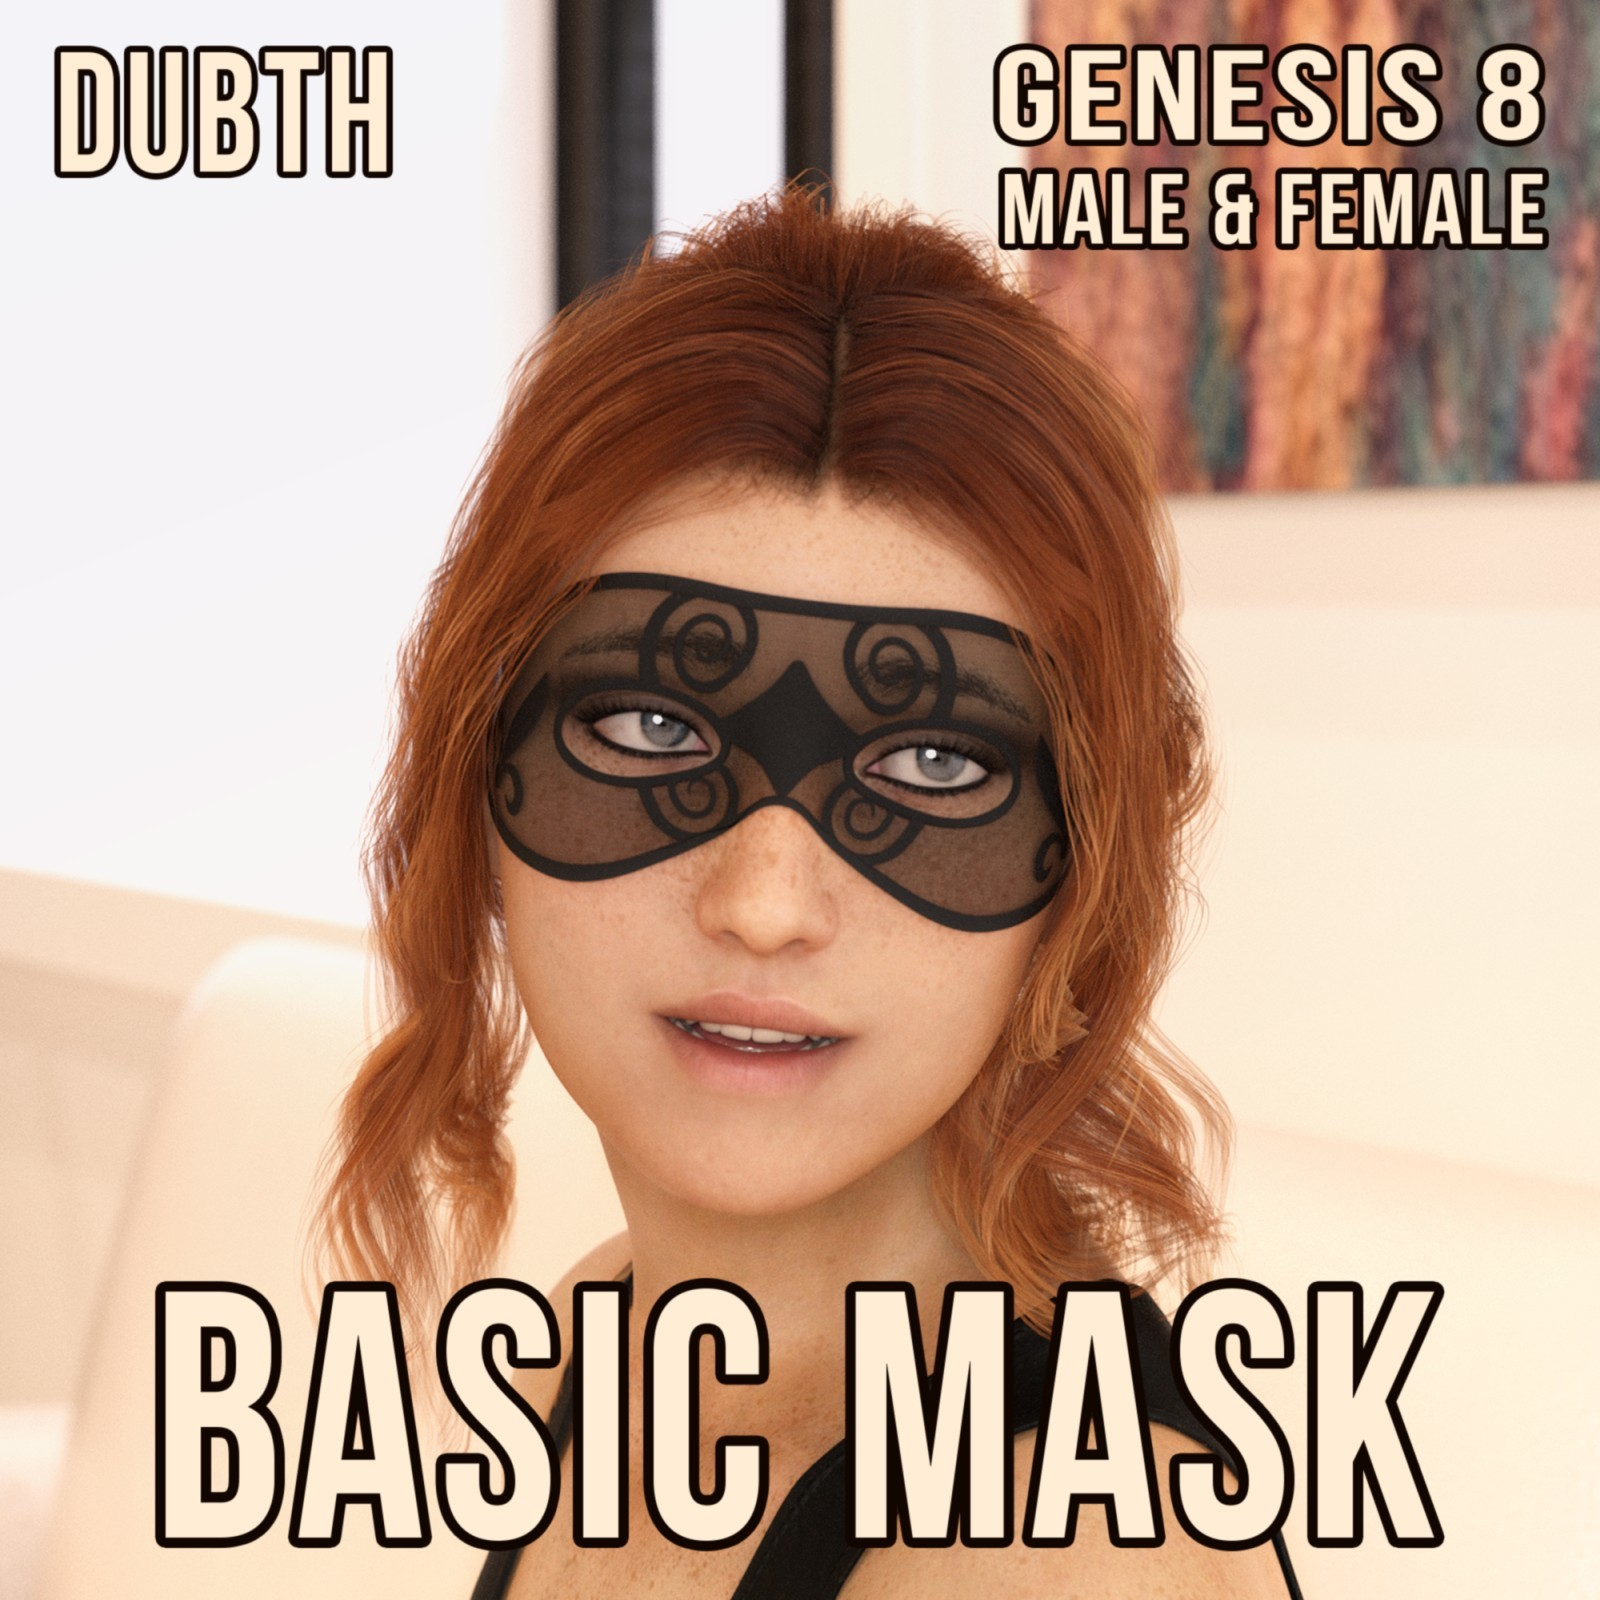 Basic Mask For G8F/G8M by DubTH